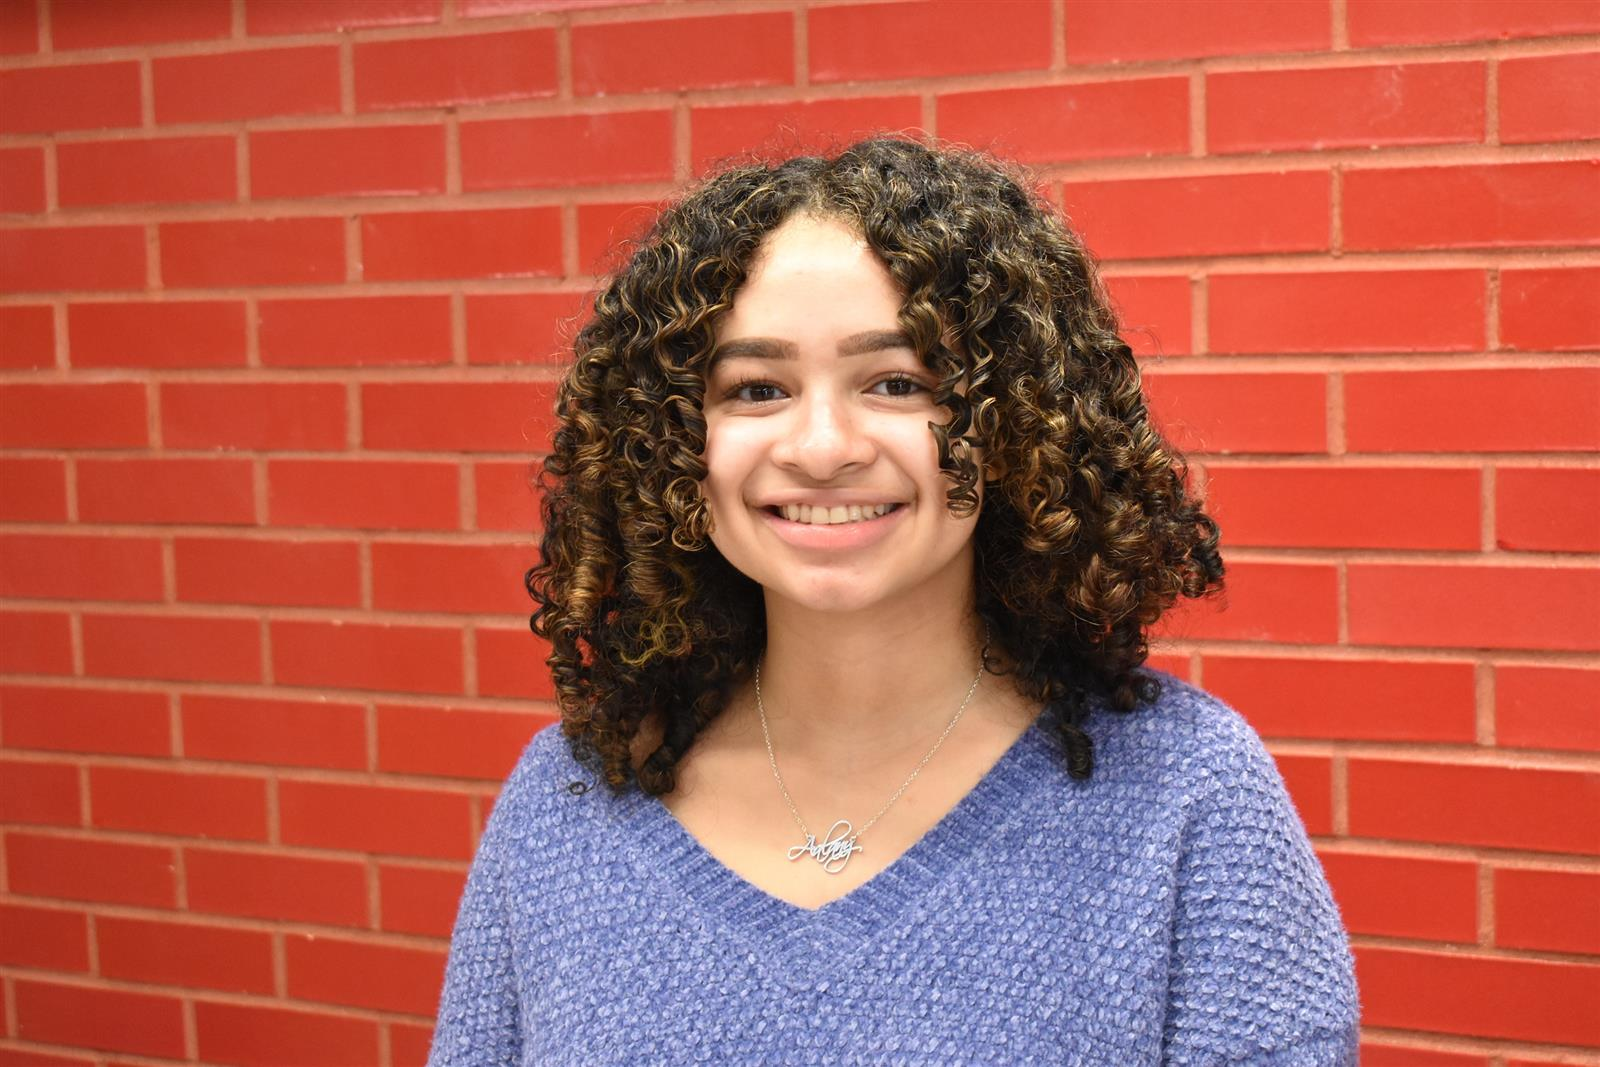 Senior Earns Highly-Coveted Scholarship